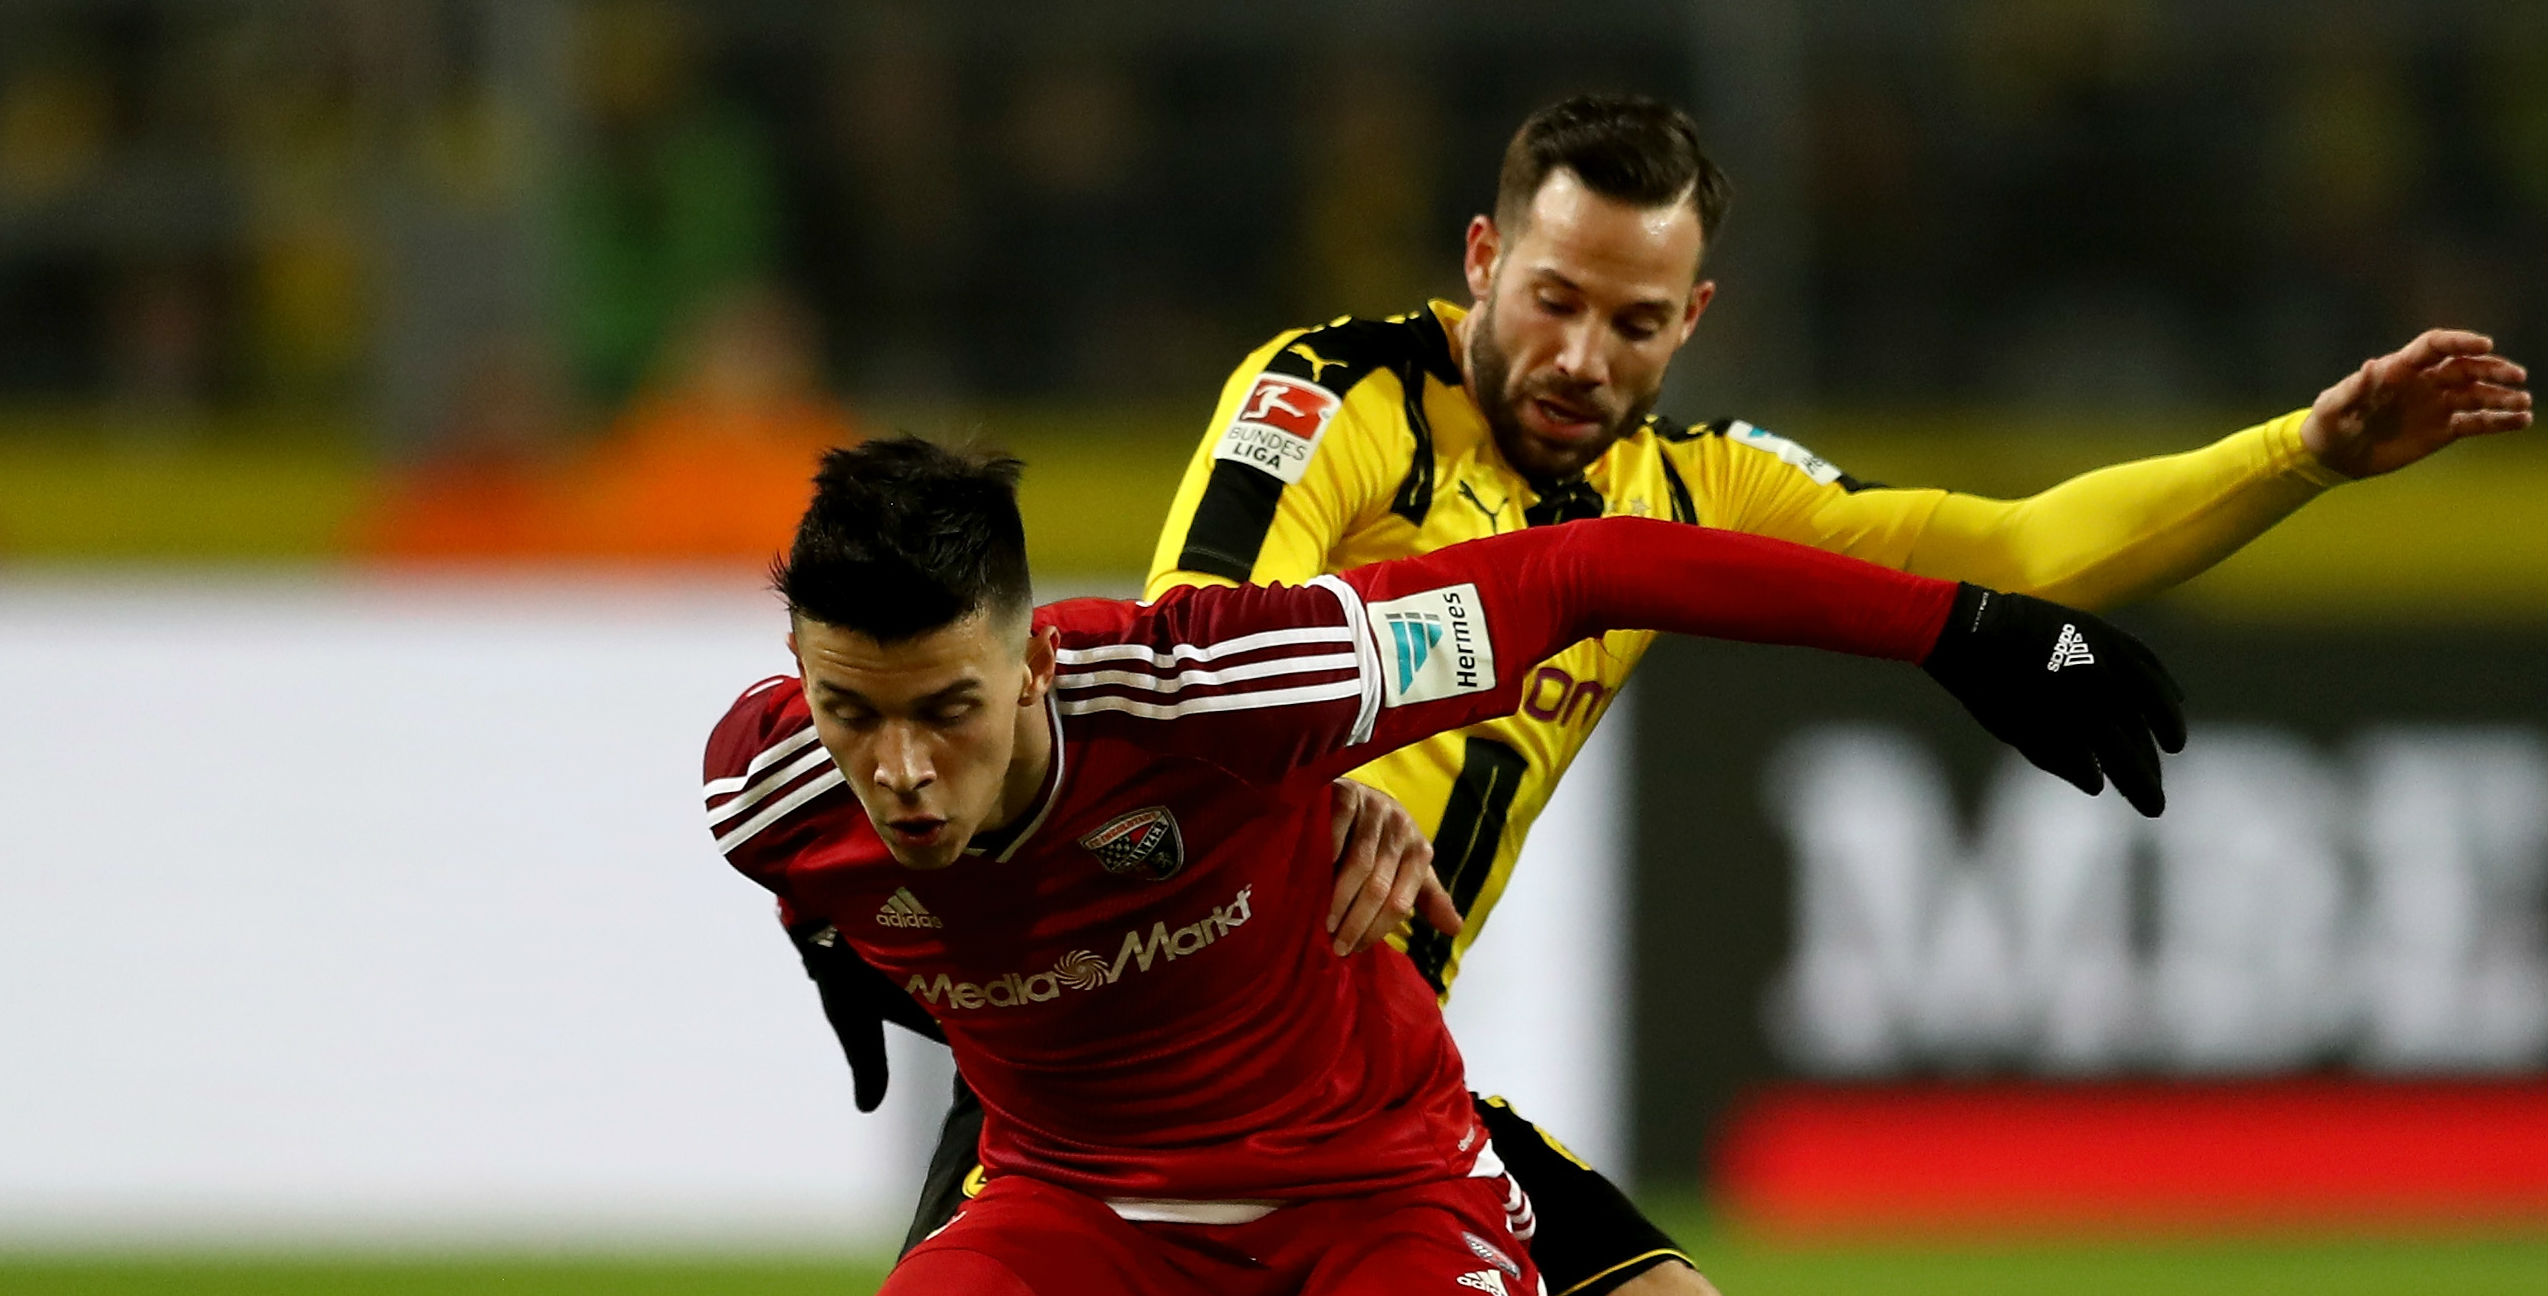 Alfredo Morales Gonzalo Castro Ingolstadt Borussia Dortmund Bundesliga 031717